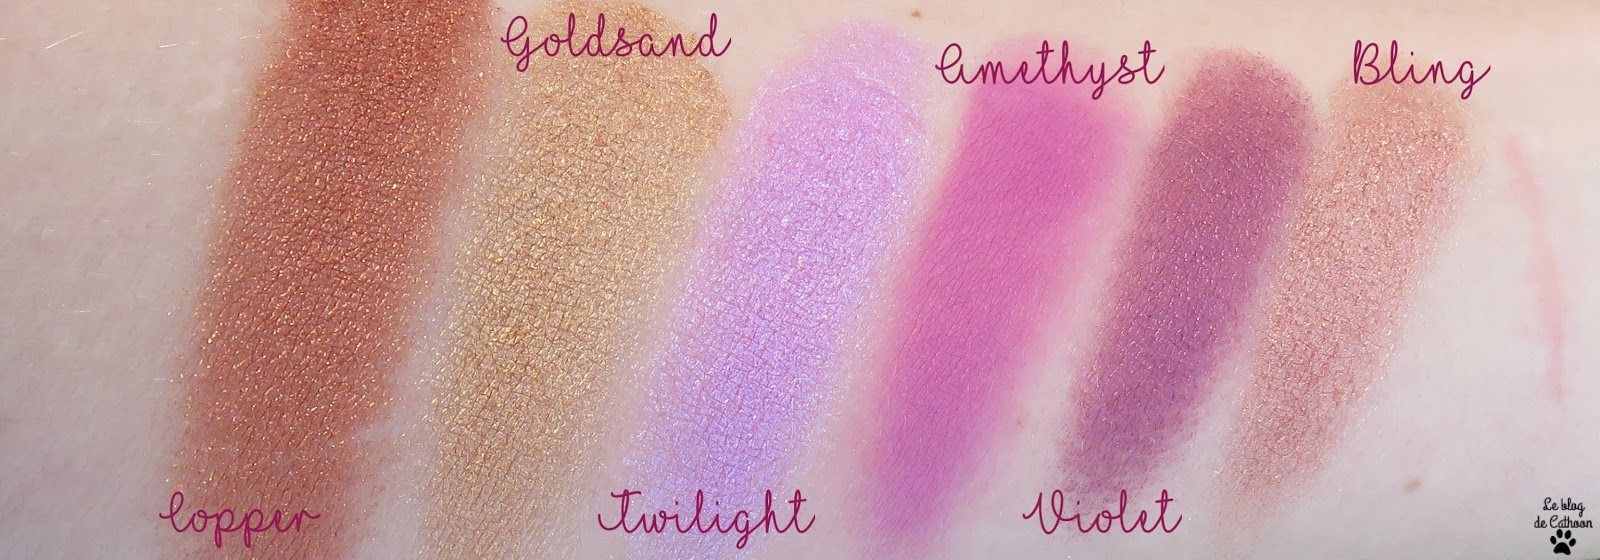 I Got You Edition - Textured Shadows Palette - Beauty Glazed